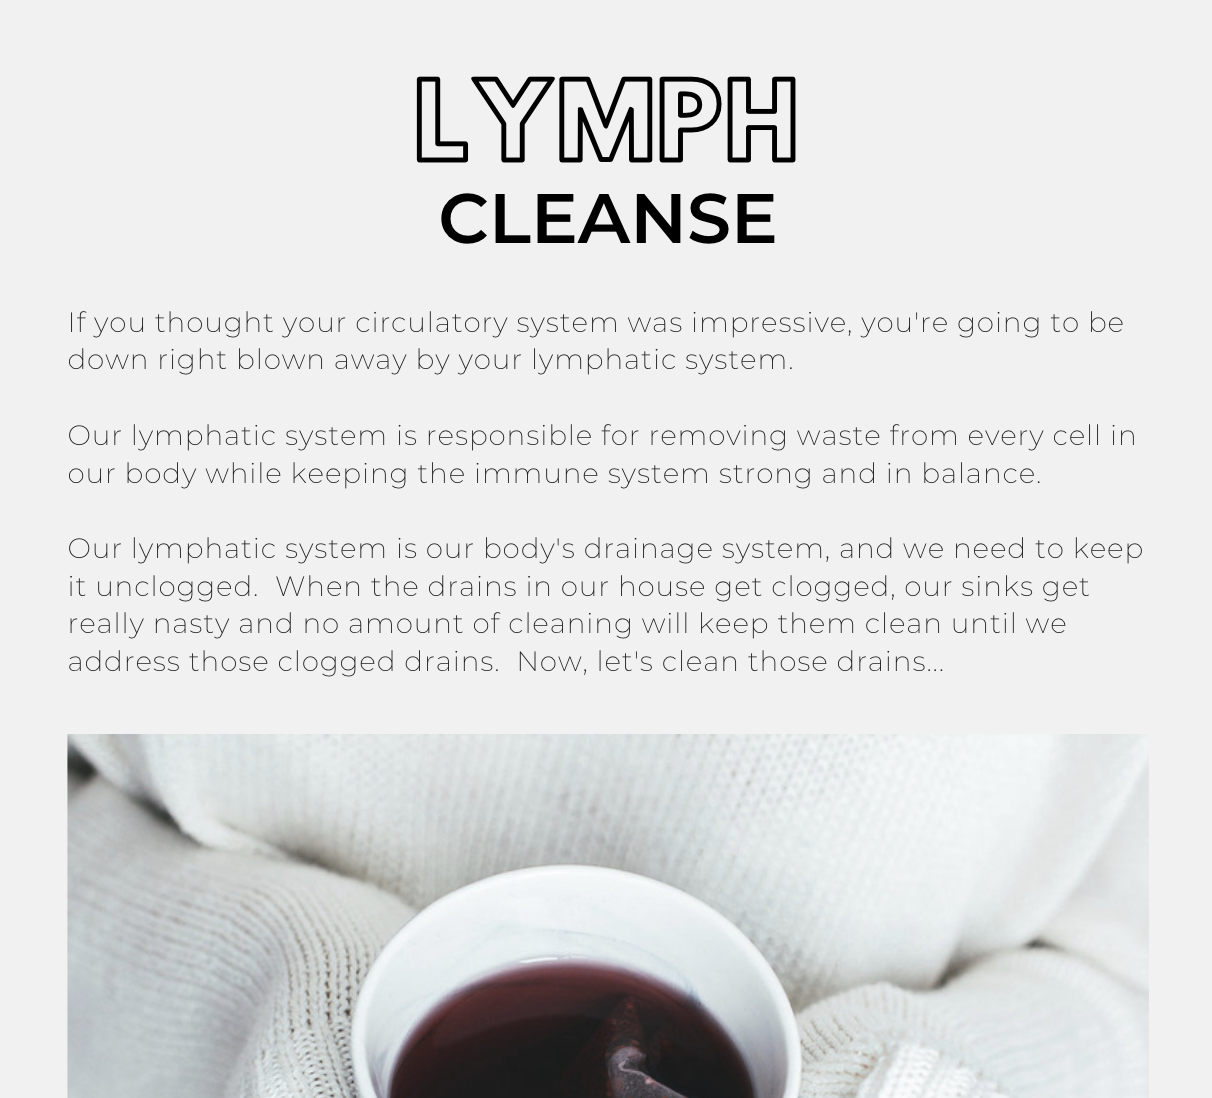 Try this 3-day immune boosting lymph cleanse.  Real and medicinal foods. . . . . . #quarantineandchill #immunehealth #sugarcraving #immuneboost #foodspo #foods4thought #eatgoodfeelgood #healthyeating #holistichealth #eatrealfood #chicagowellness #holisticchicago #abundelicious #nodiets #springdetox